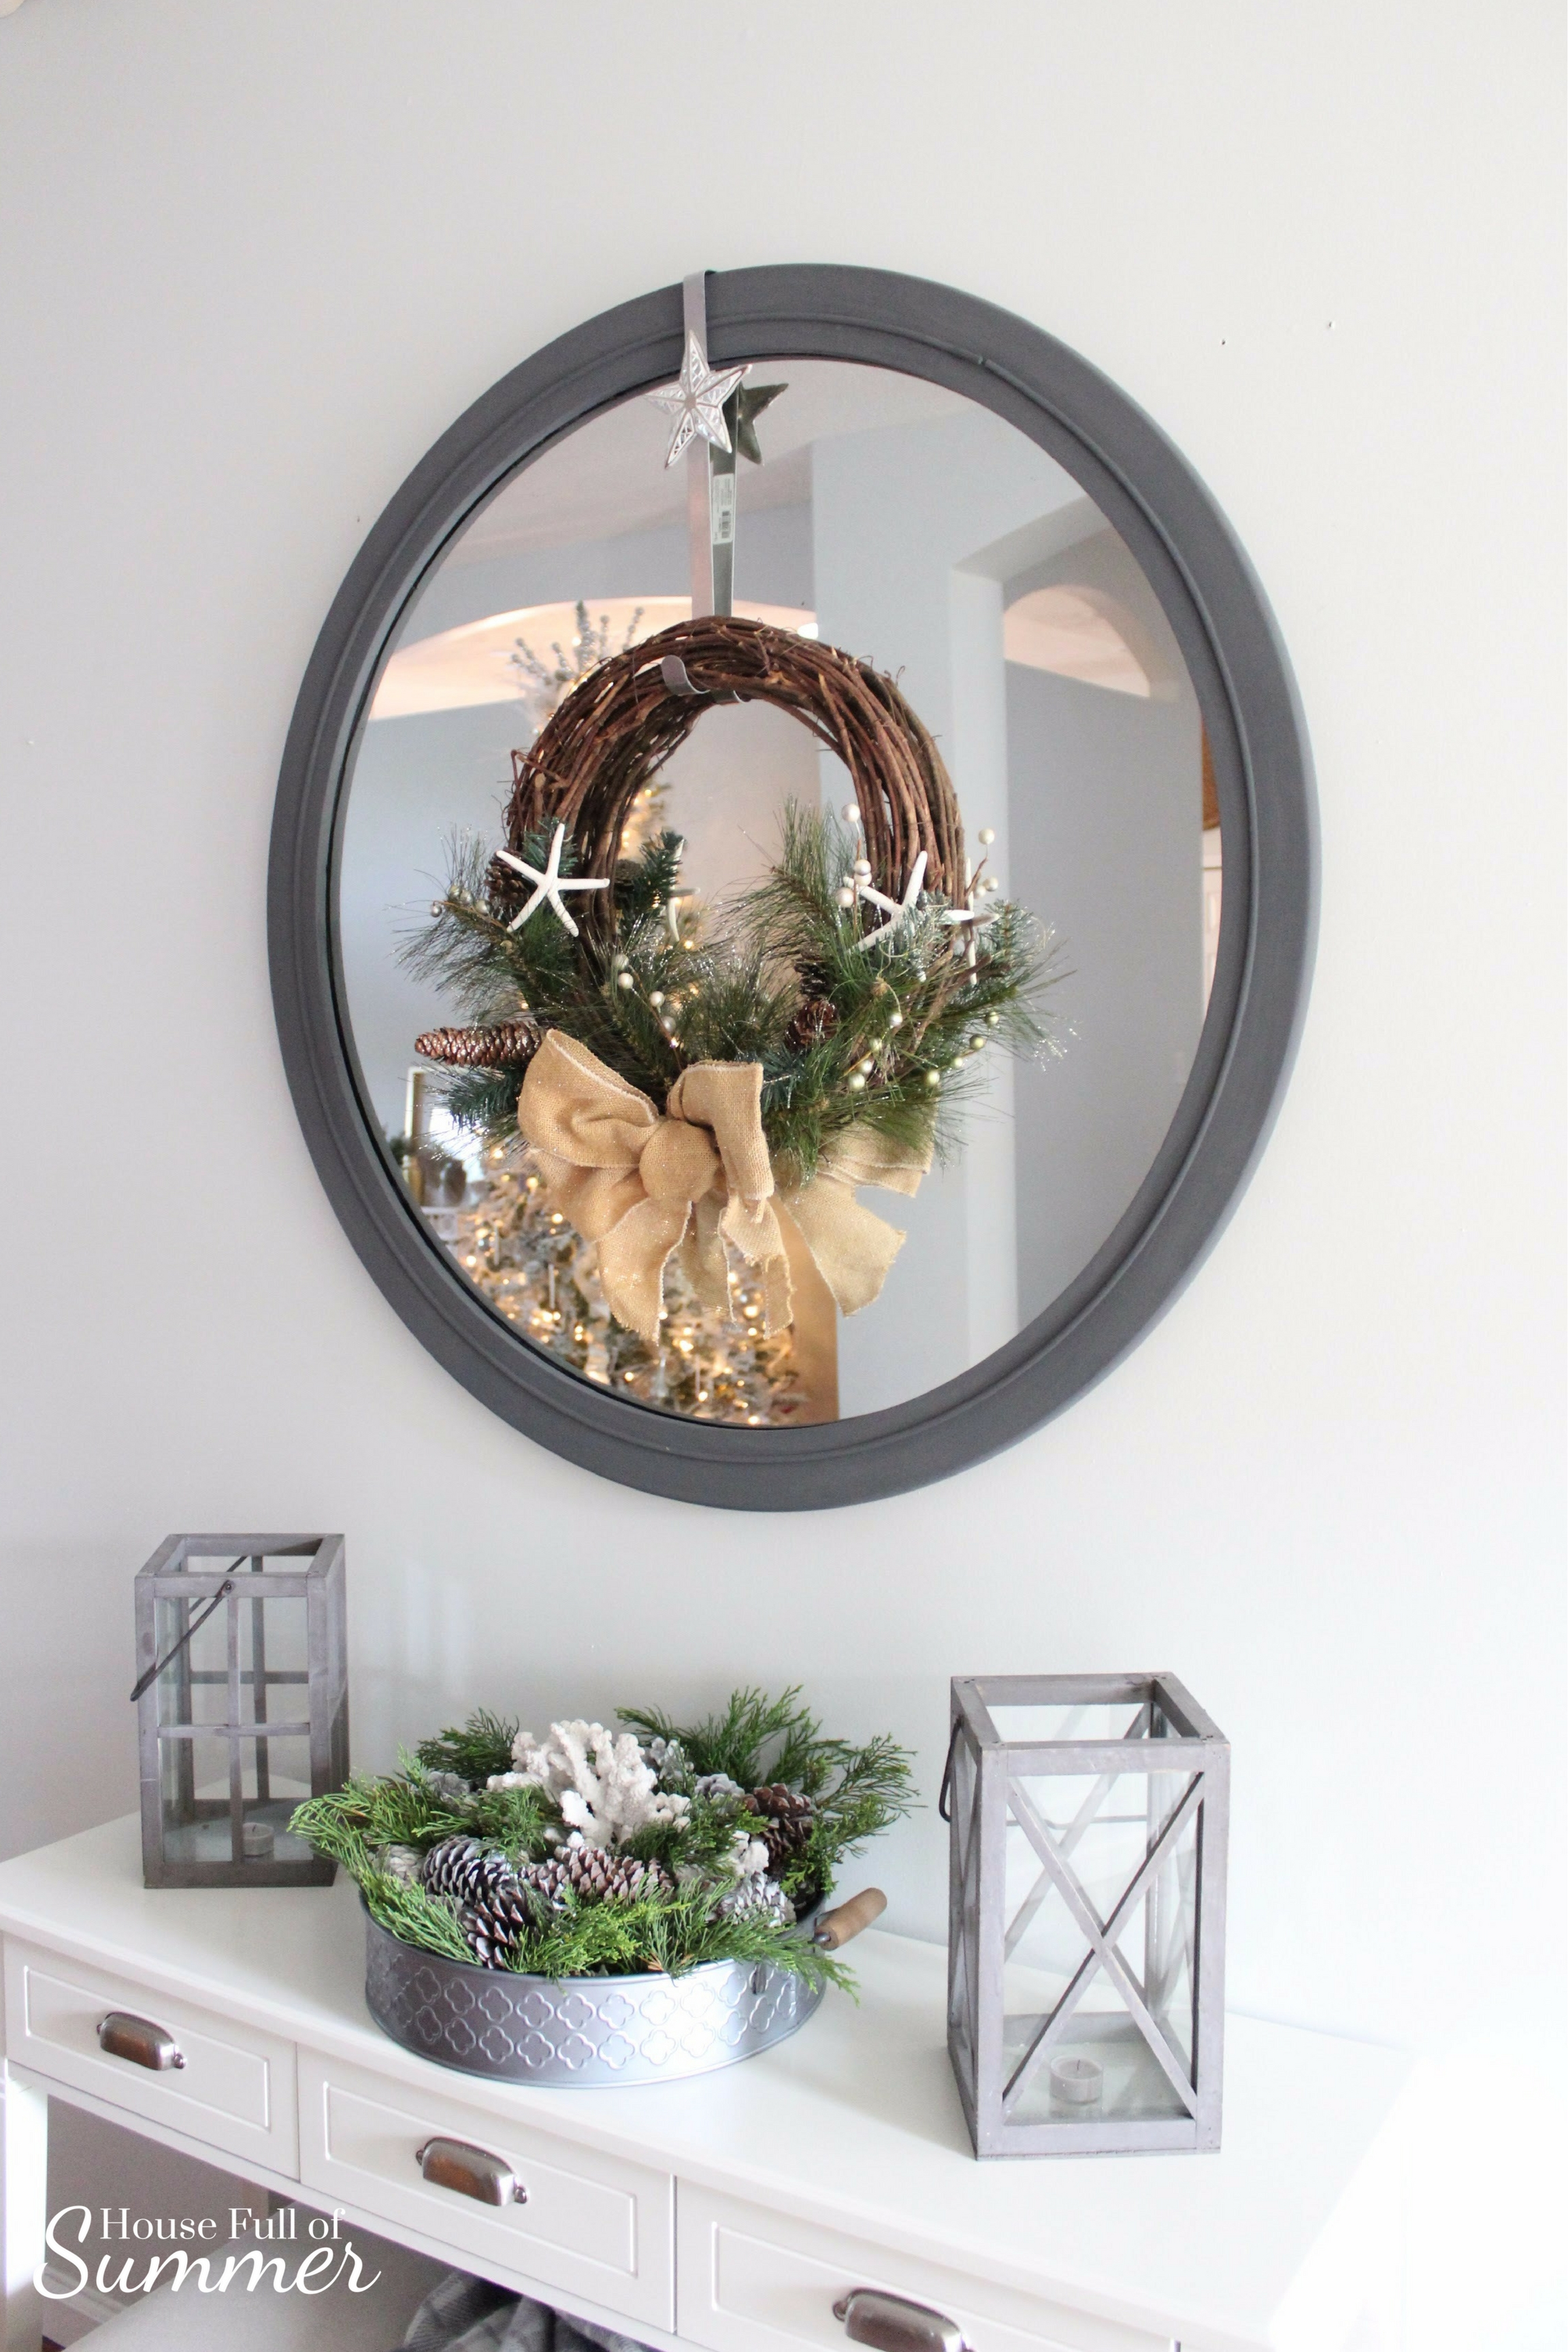 Christmas Home Tour | House Full of Summer blog hop - Cheerful Christmas Home Tourcoastal christmas neutral christmas decor, holiday home tour, florida christmas, neutral coastal decor